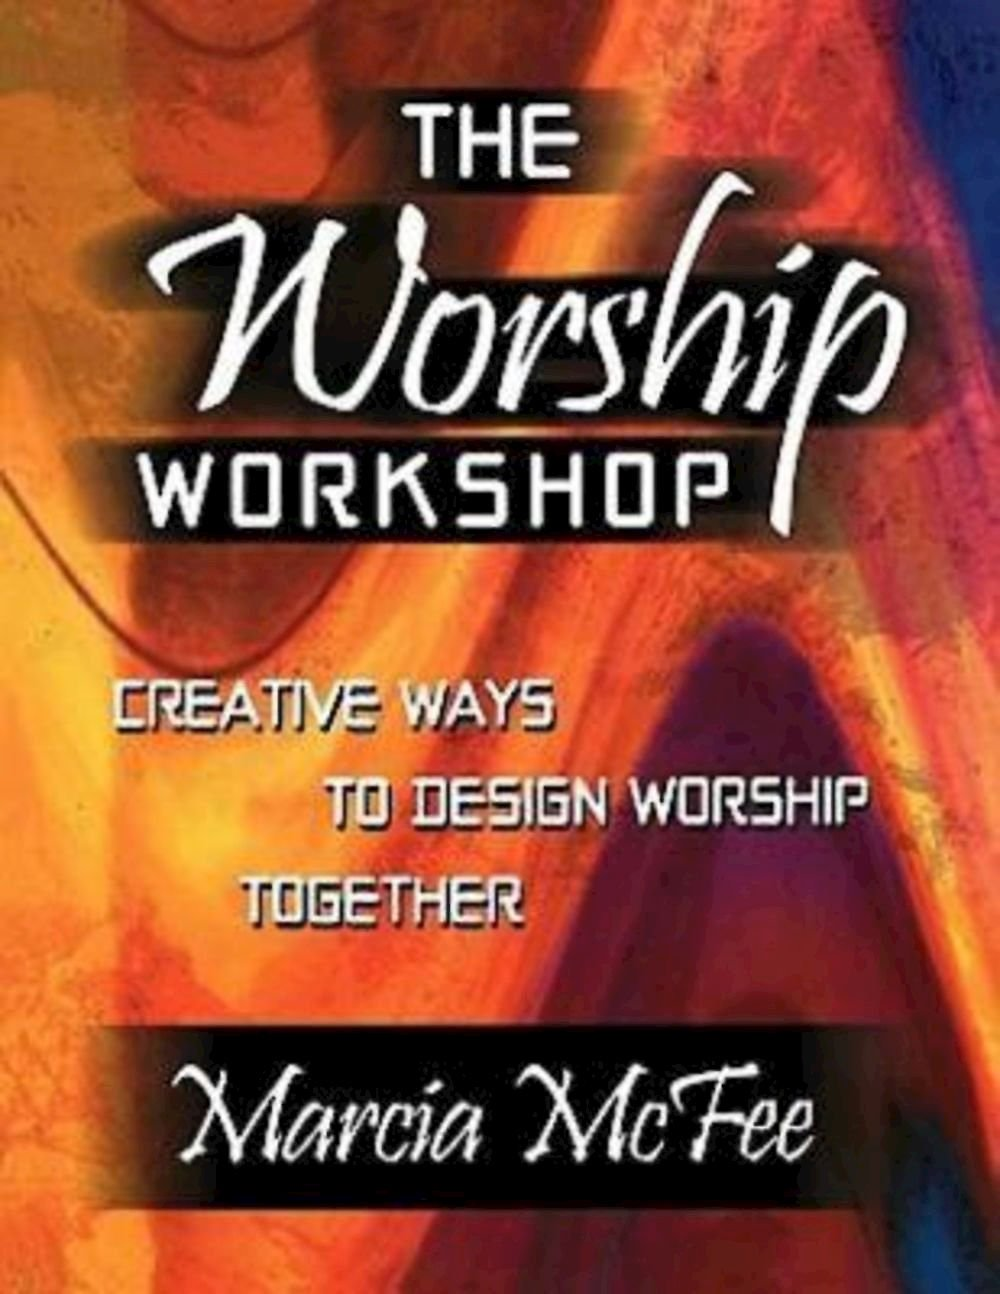 The worship workshop creative ways to design worship together the worship workshop creative ways to design worship together marcia mcfee 9780687046348 amazon books fandeluxe Gallery